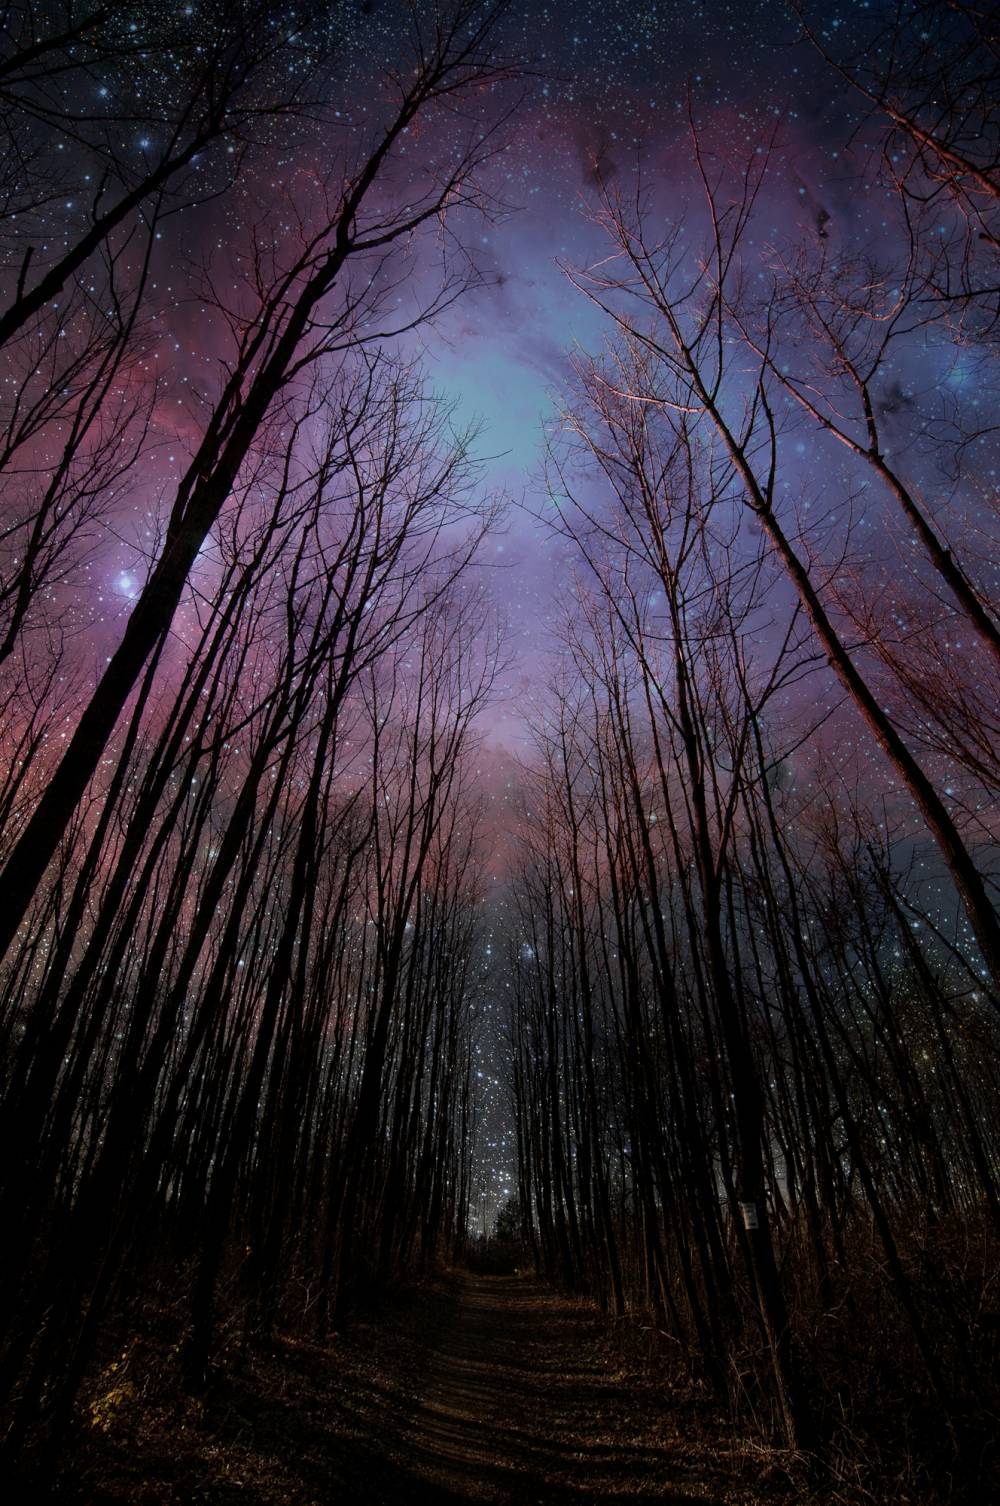 Starry-Sky-wallpaper-wp421453